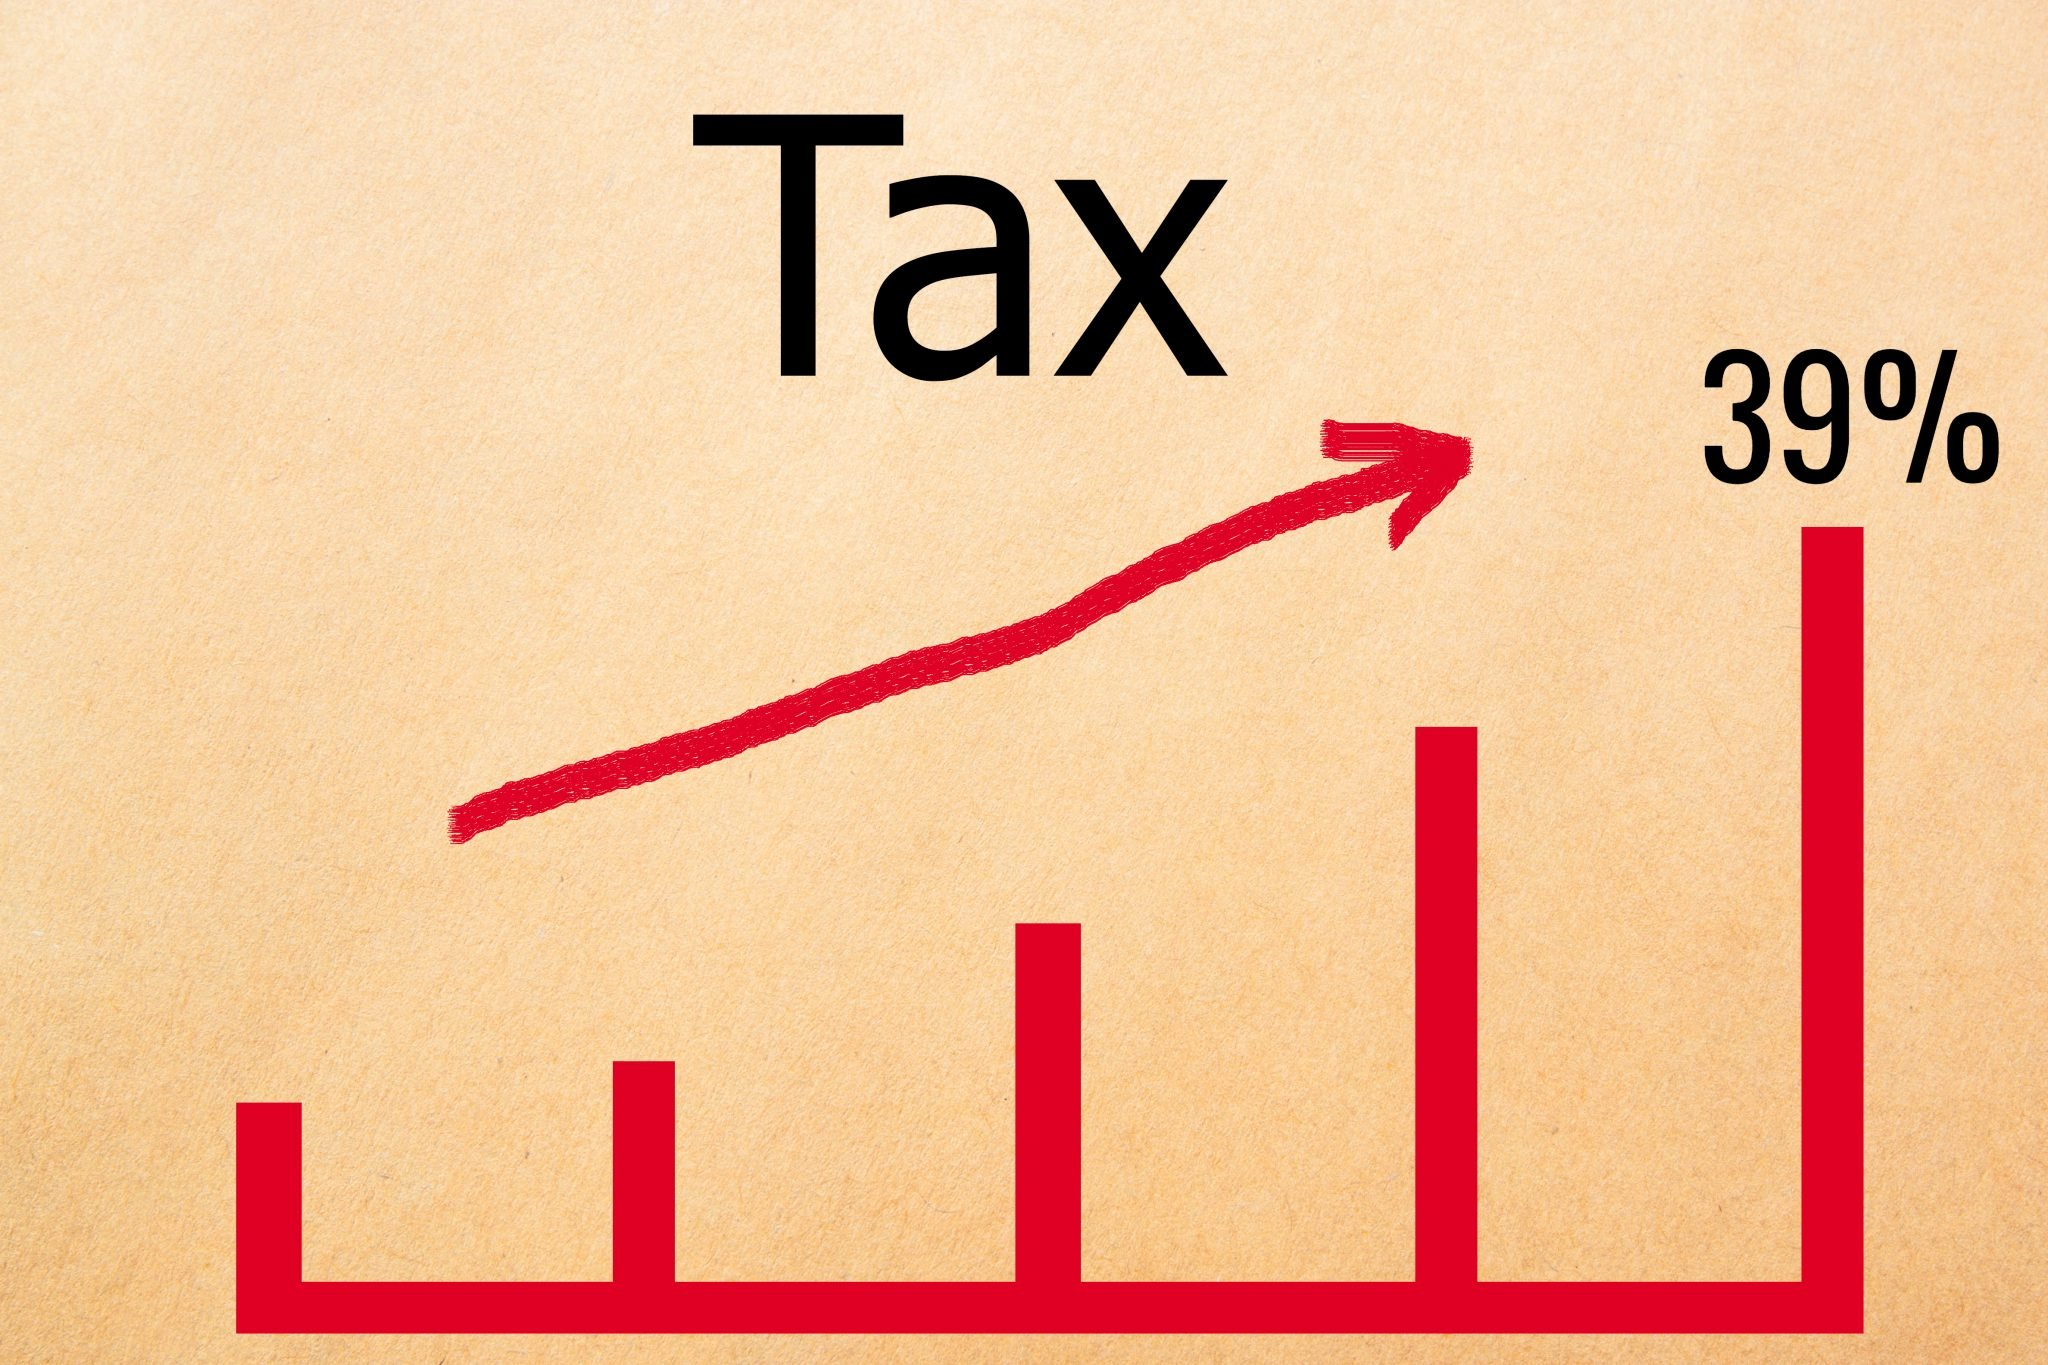 Labour to hike up top tax rate to 39% - KTS Chartered Accountants